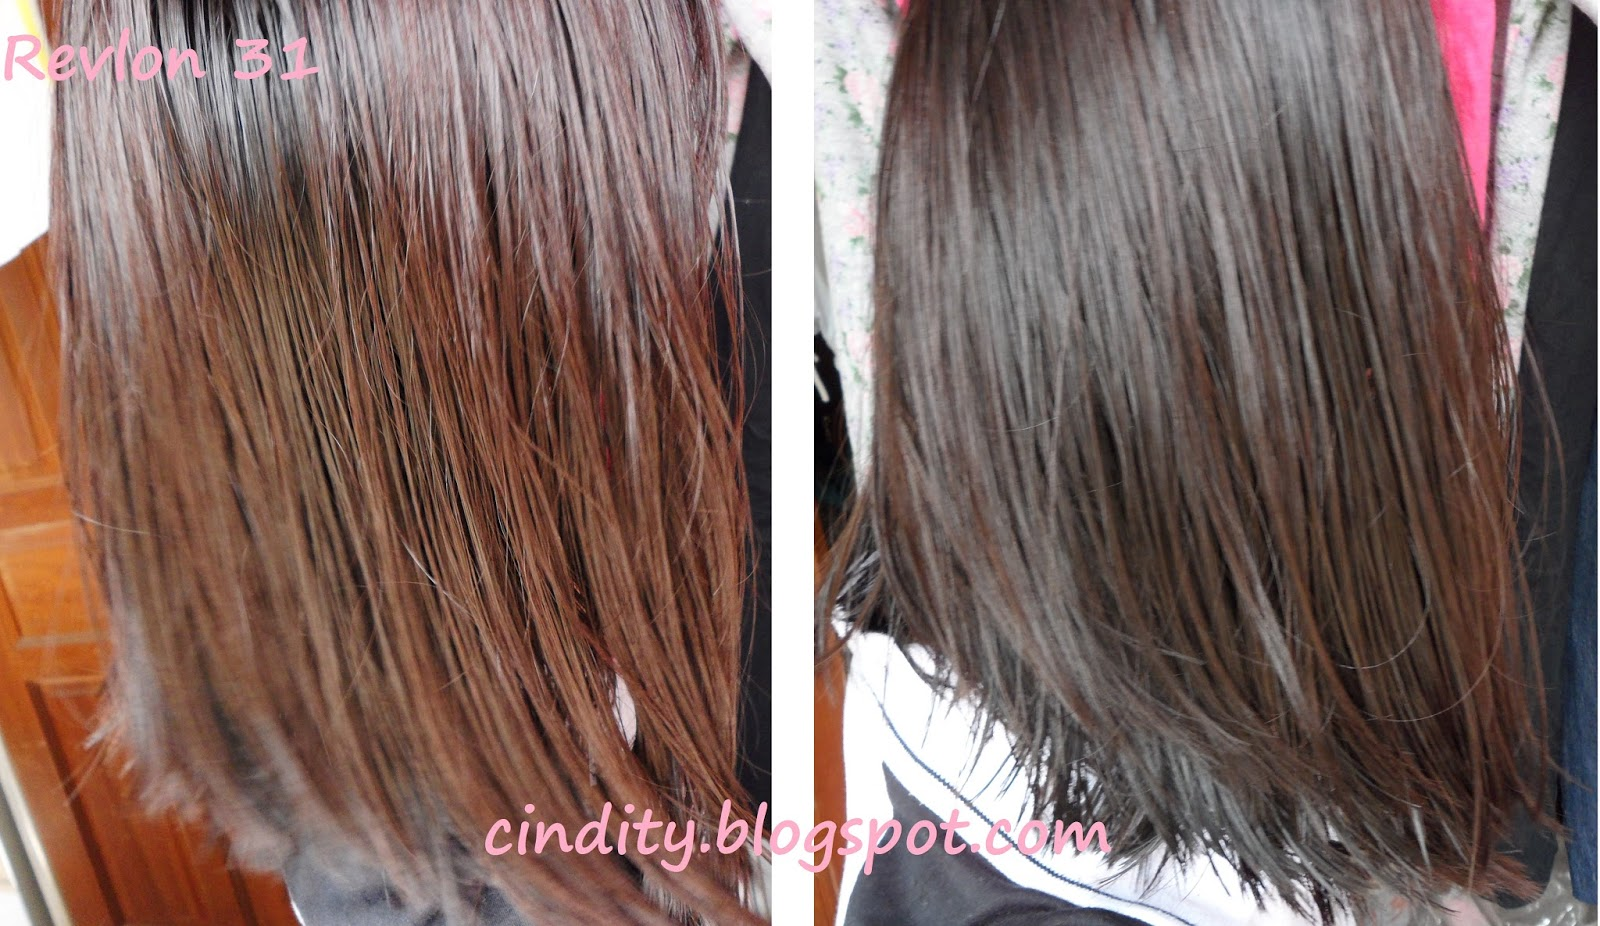 Hair Colour My Virgin Dye Review Revlon Colorsilk Dark Semir Rambut Top Immediately After Dyeing And Washing Haha Was Still Uhm Wet